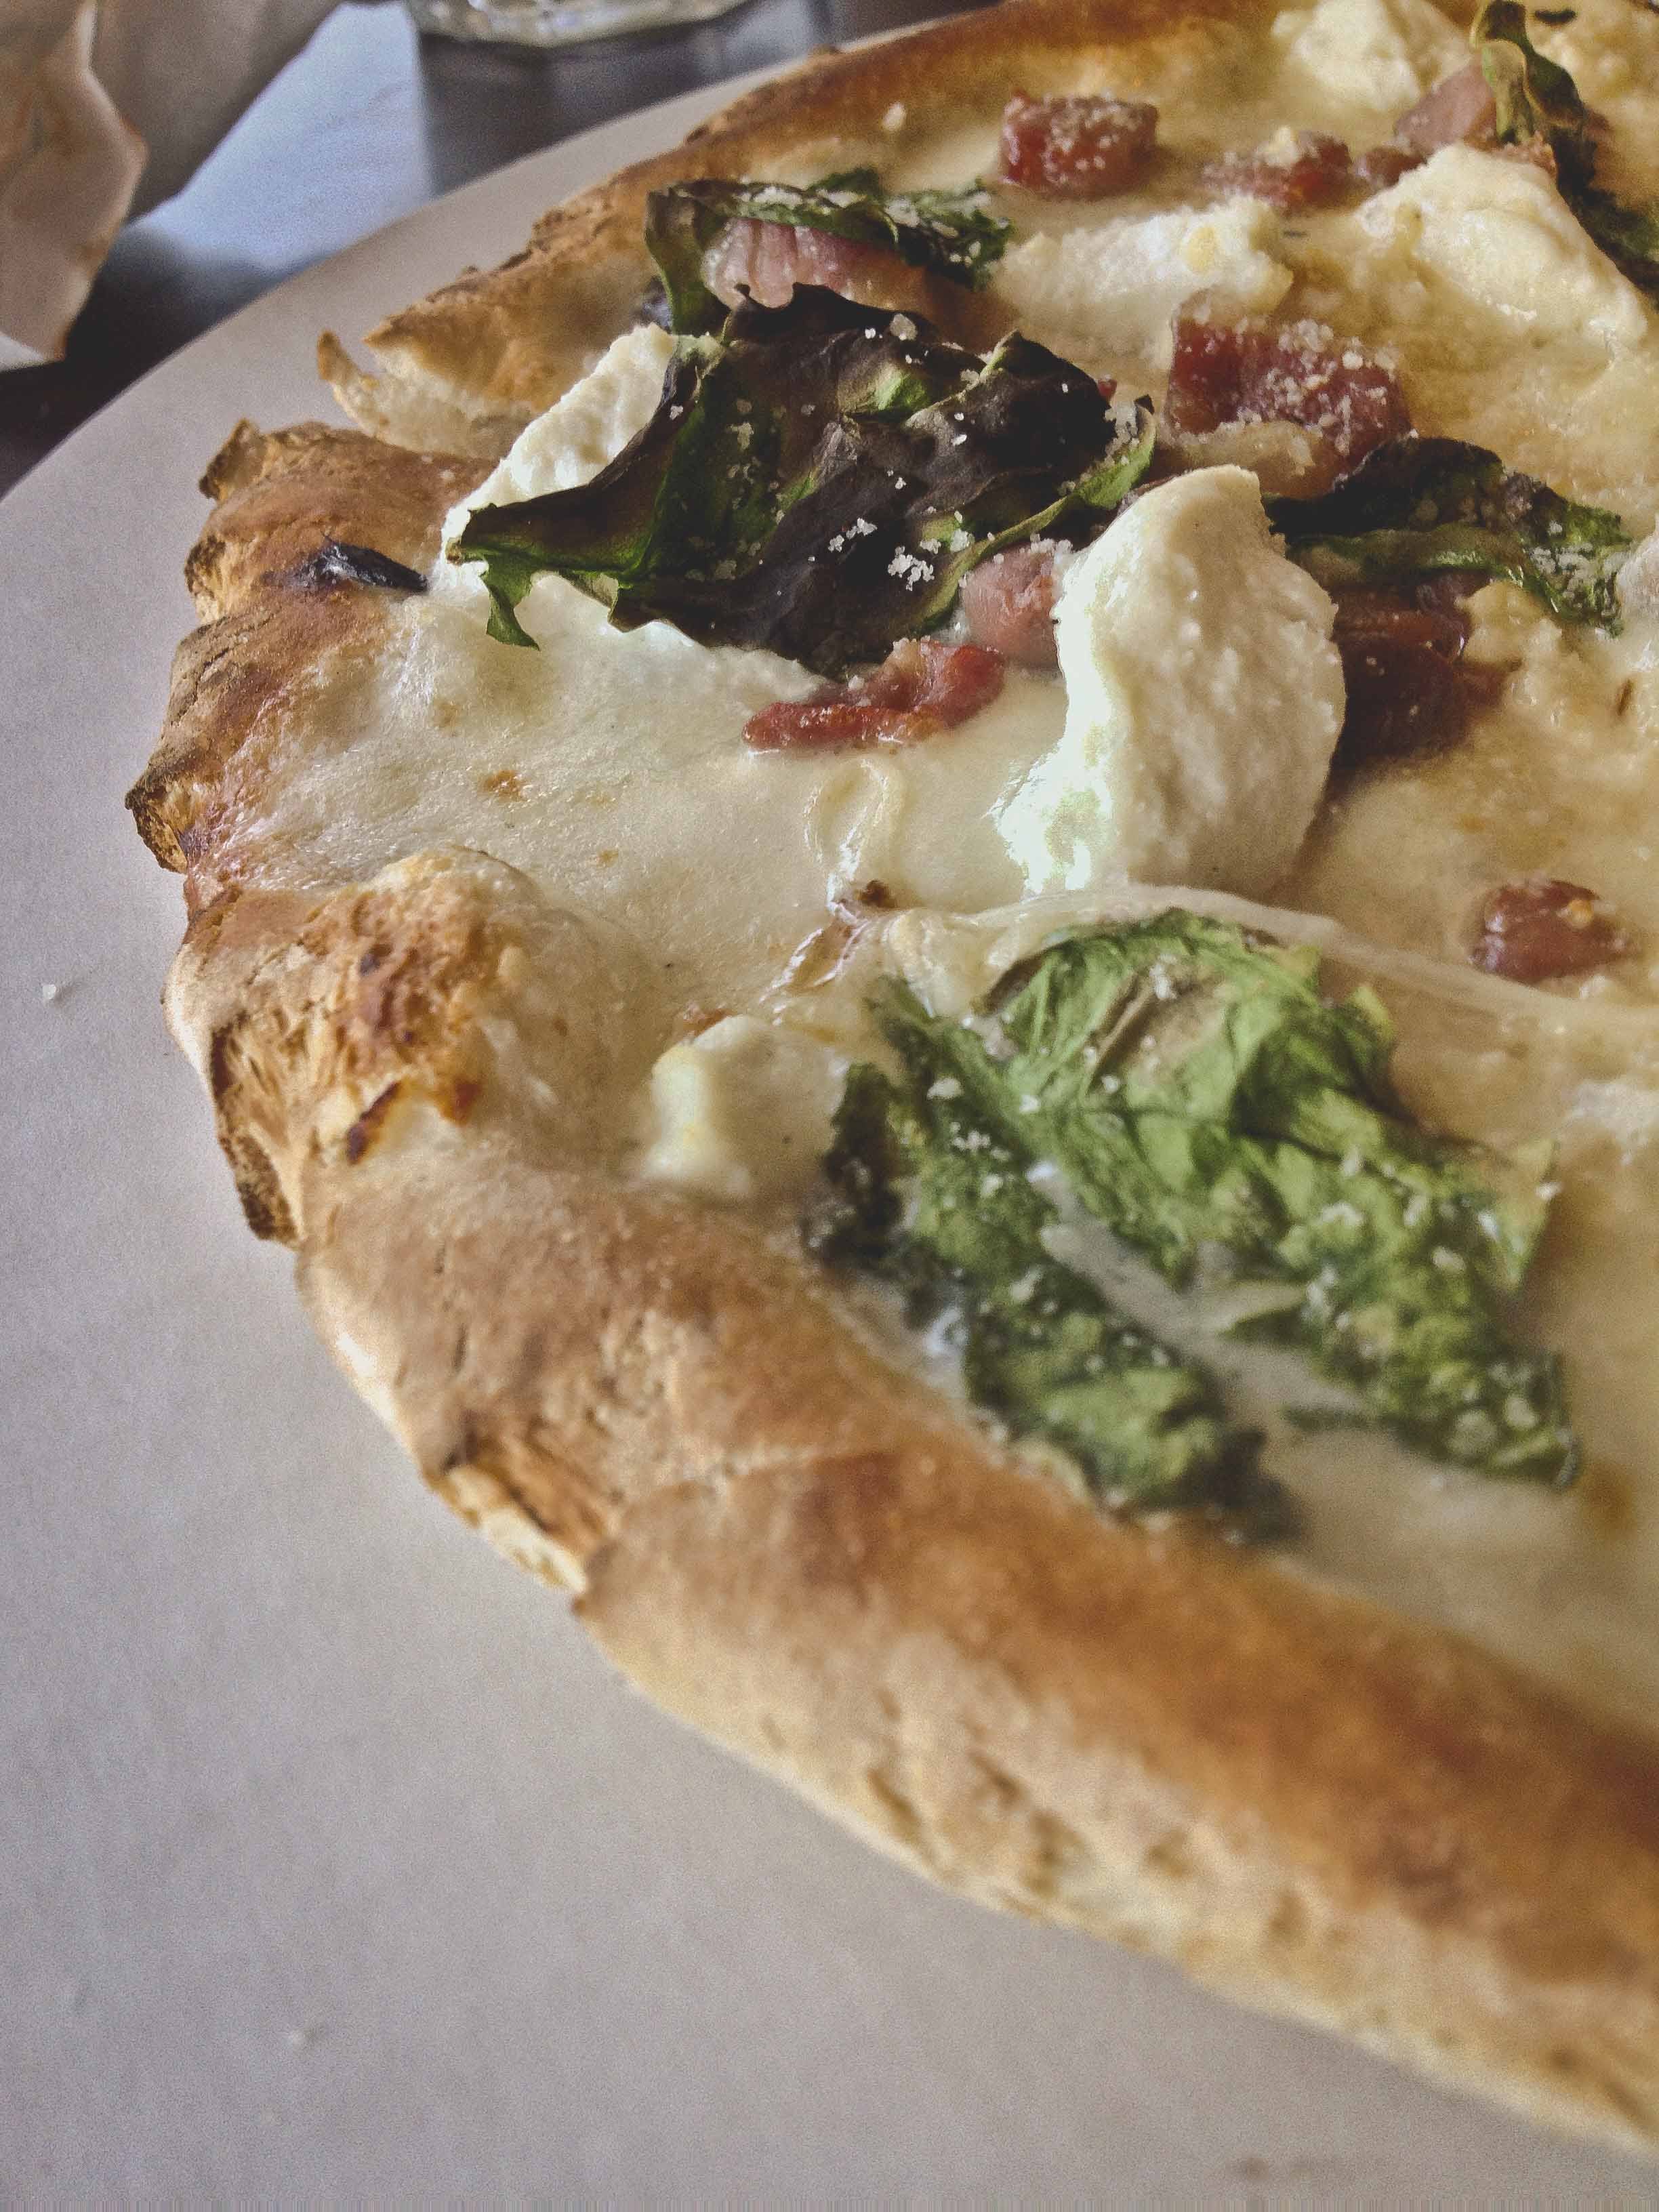 We checked out the newly-opened Last Drop Tavern on S. Elm and were pretty pleased with what we had.